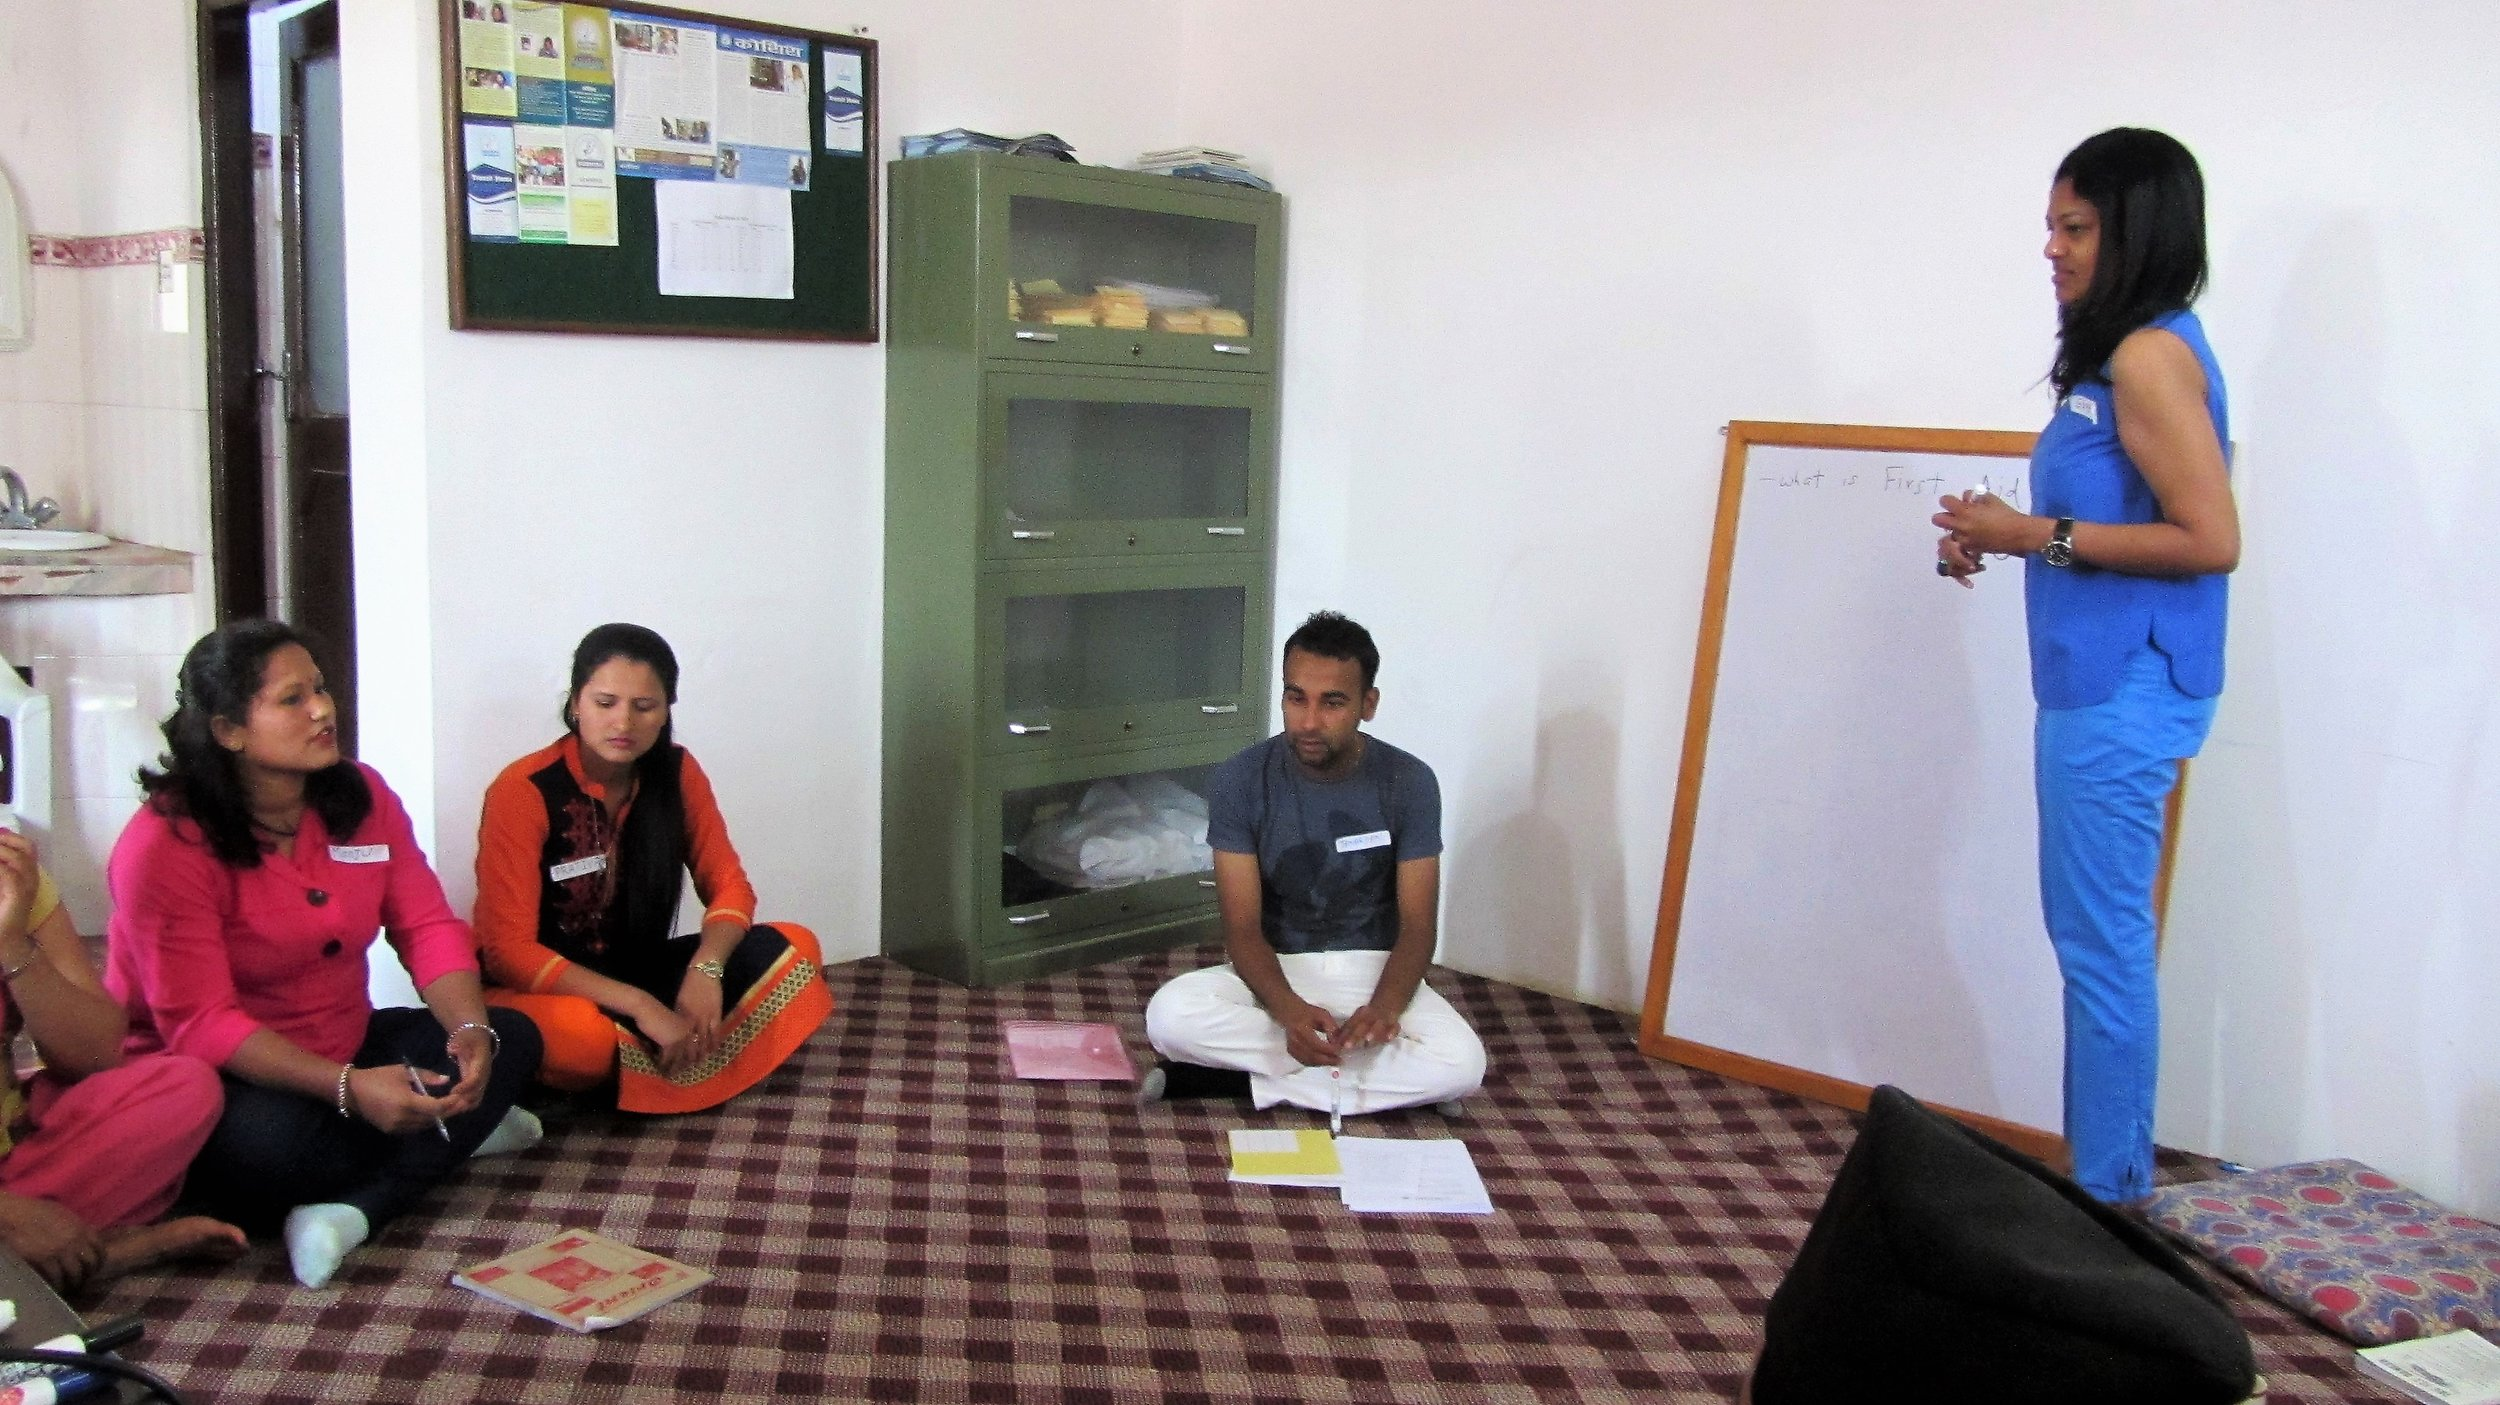 Gayathri co-facilitating a training session for healthcare assistants at KOSHISH Nepal. Kathmandu, Nov 2017.